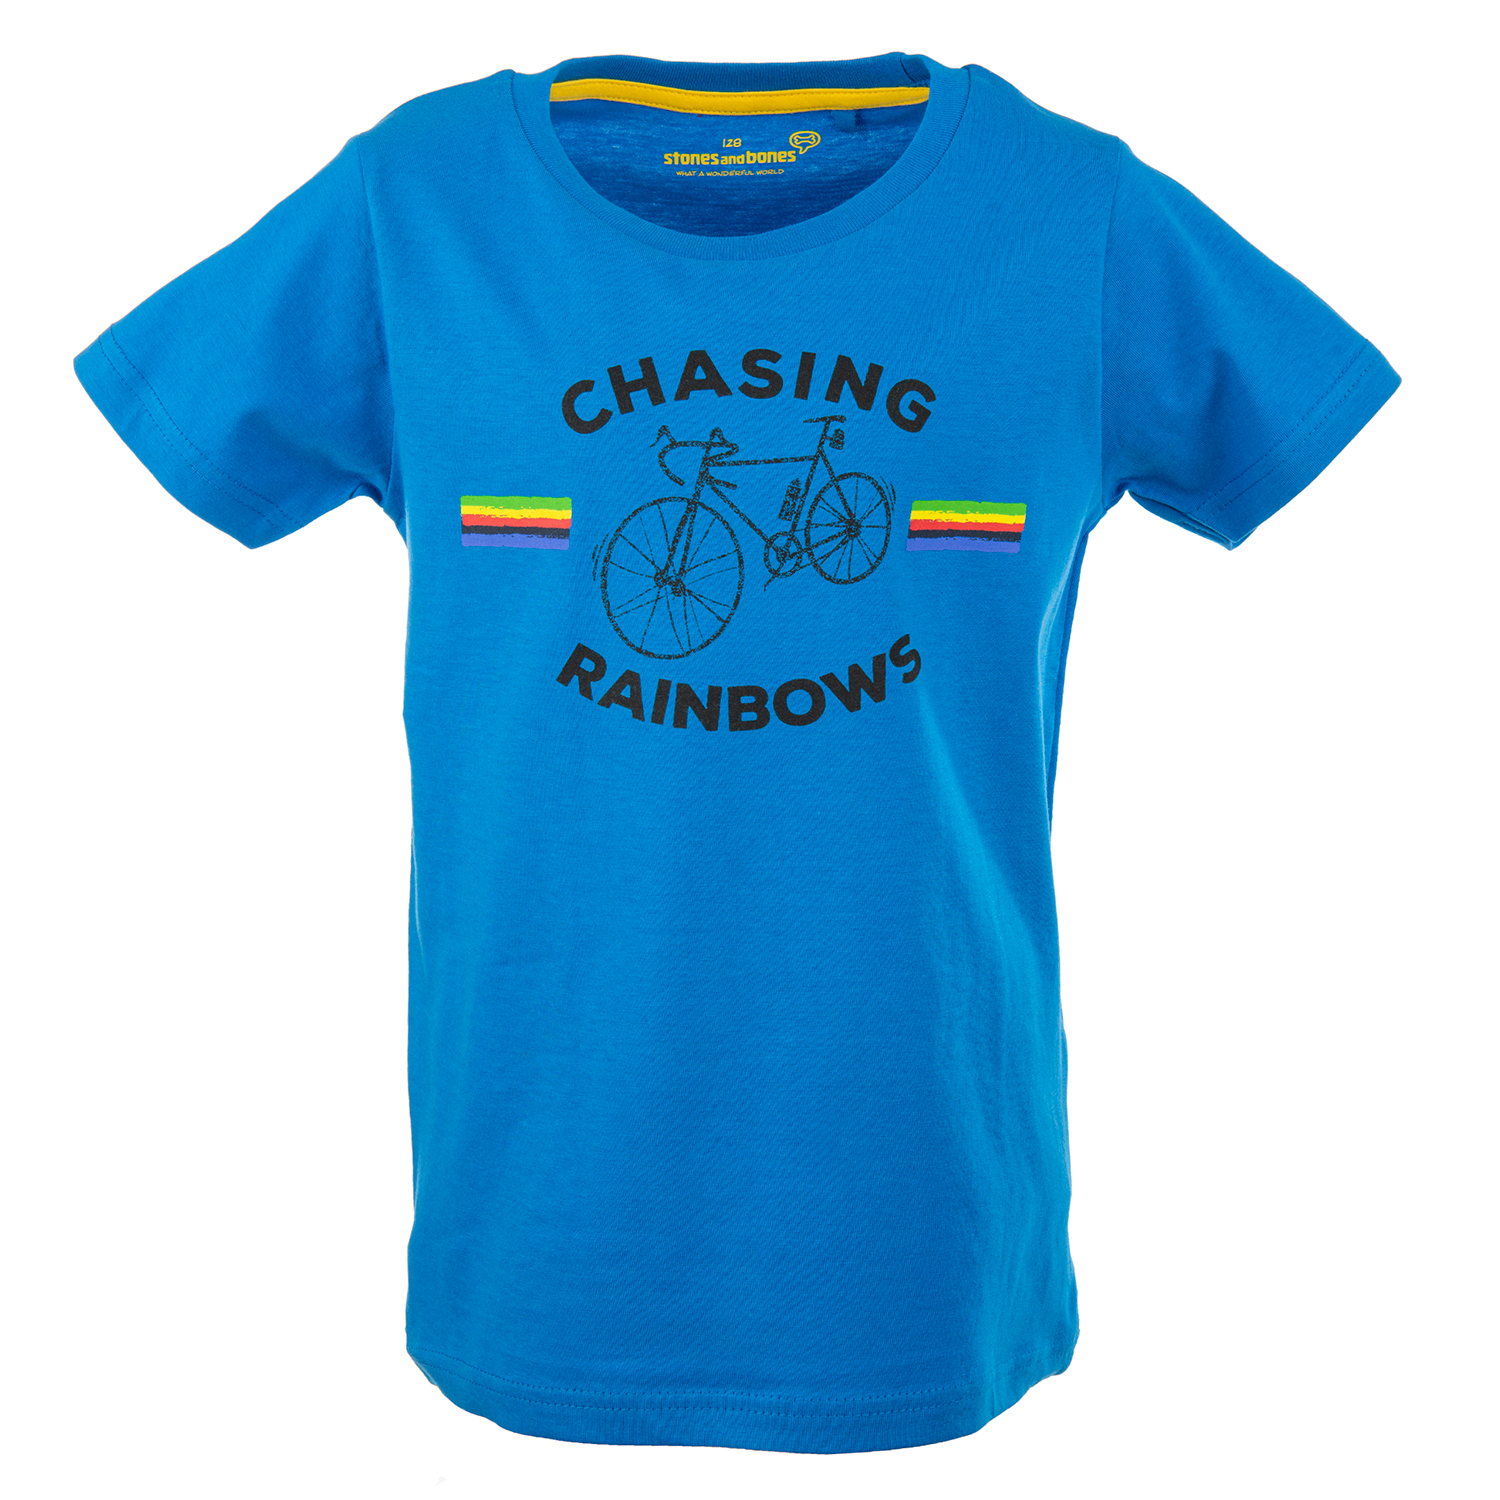 Russell - CHASING RAINBOWS azure